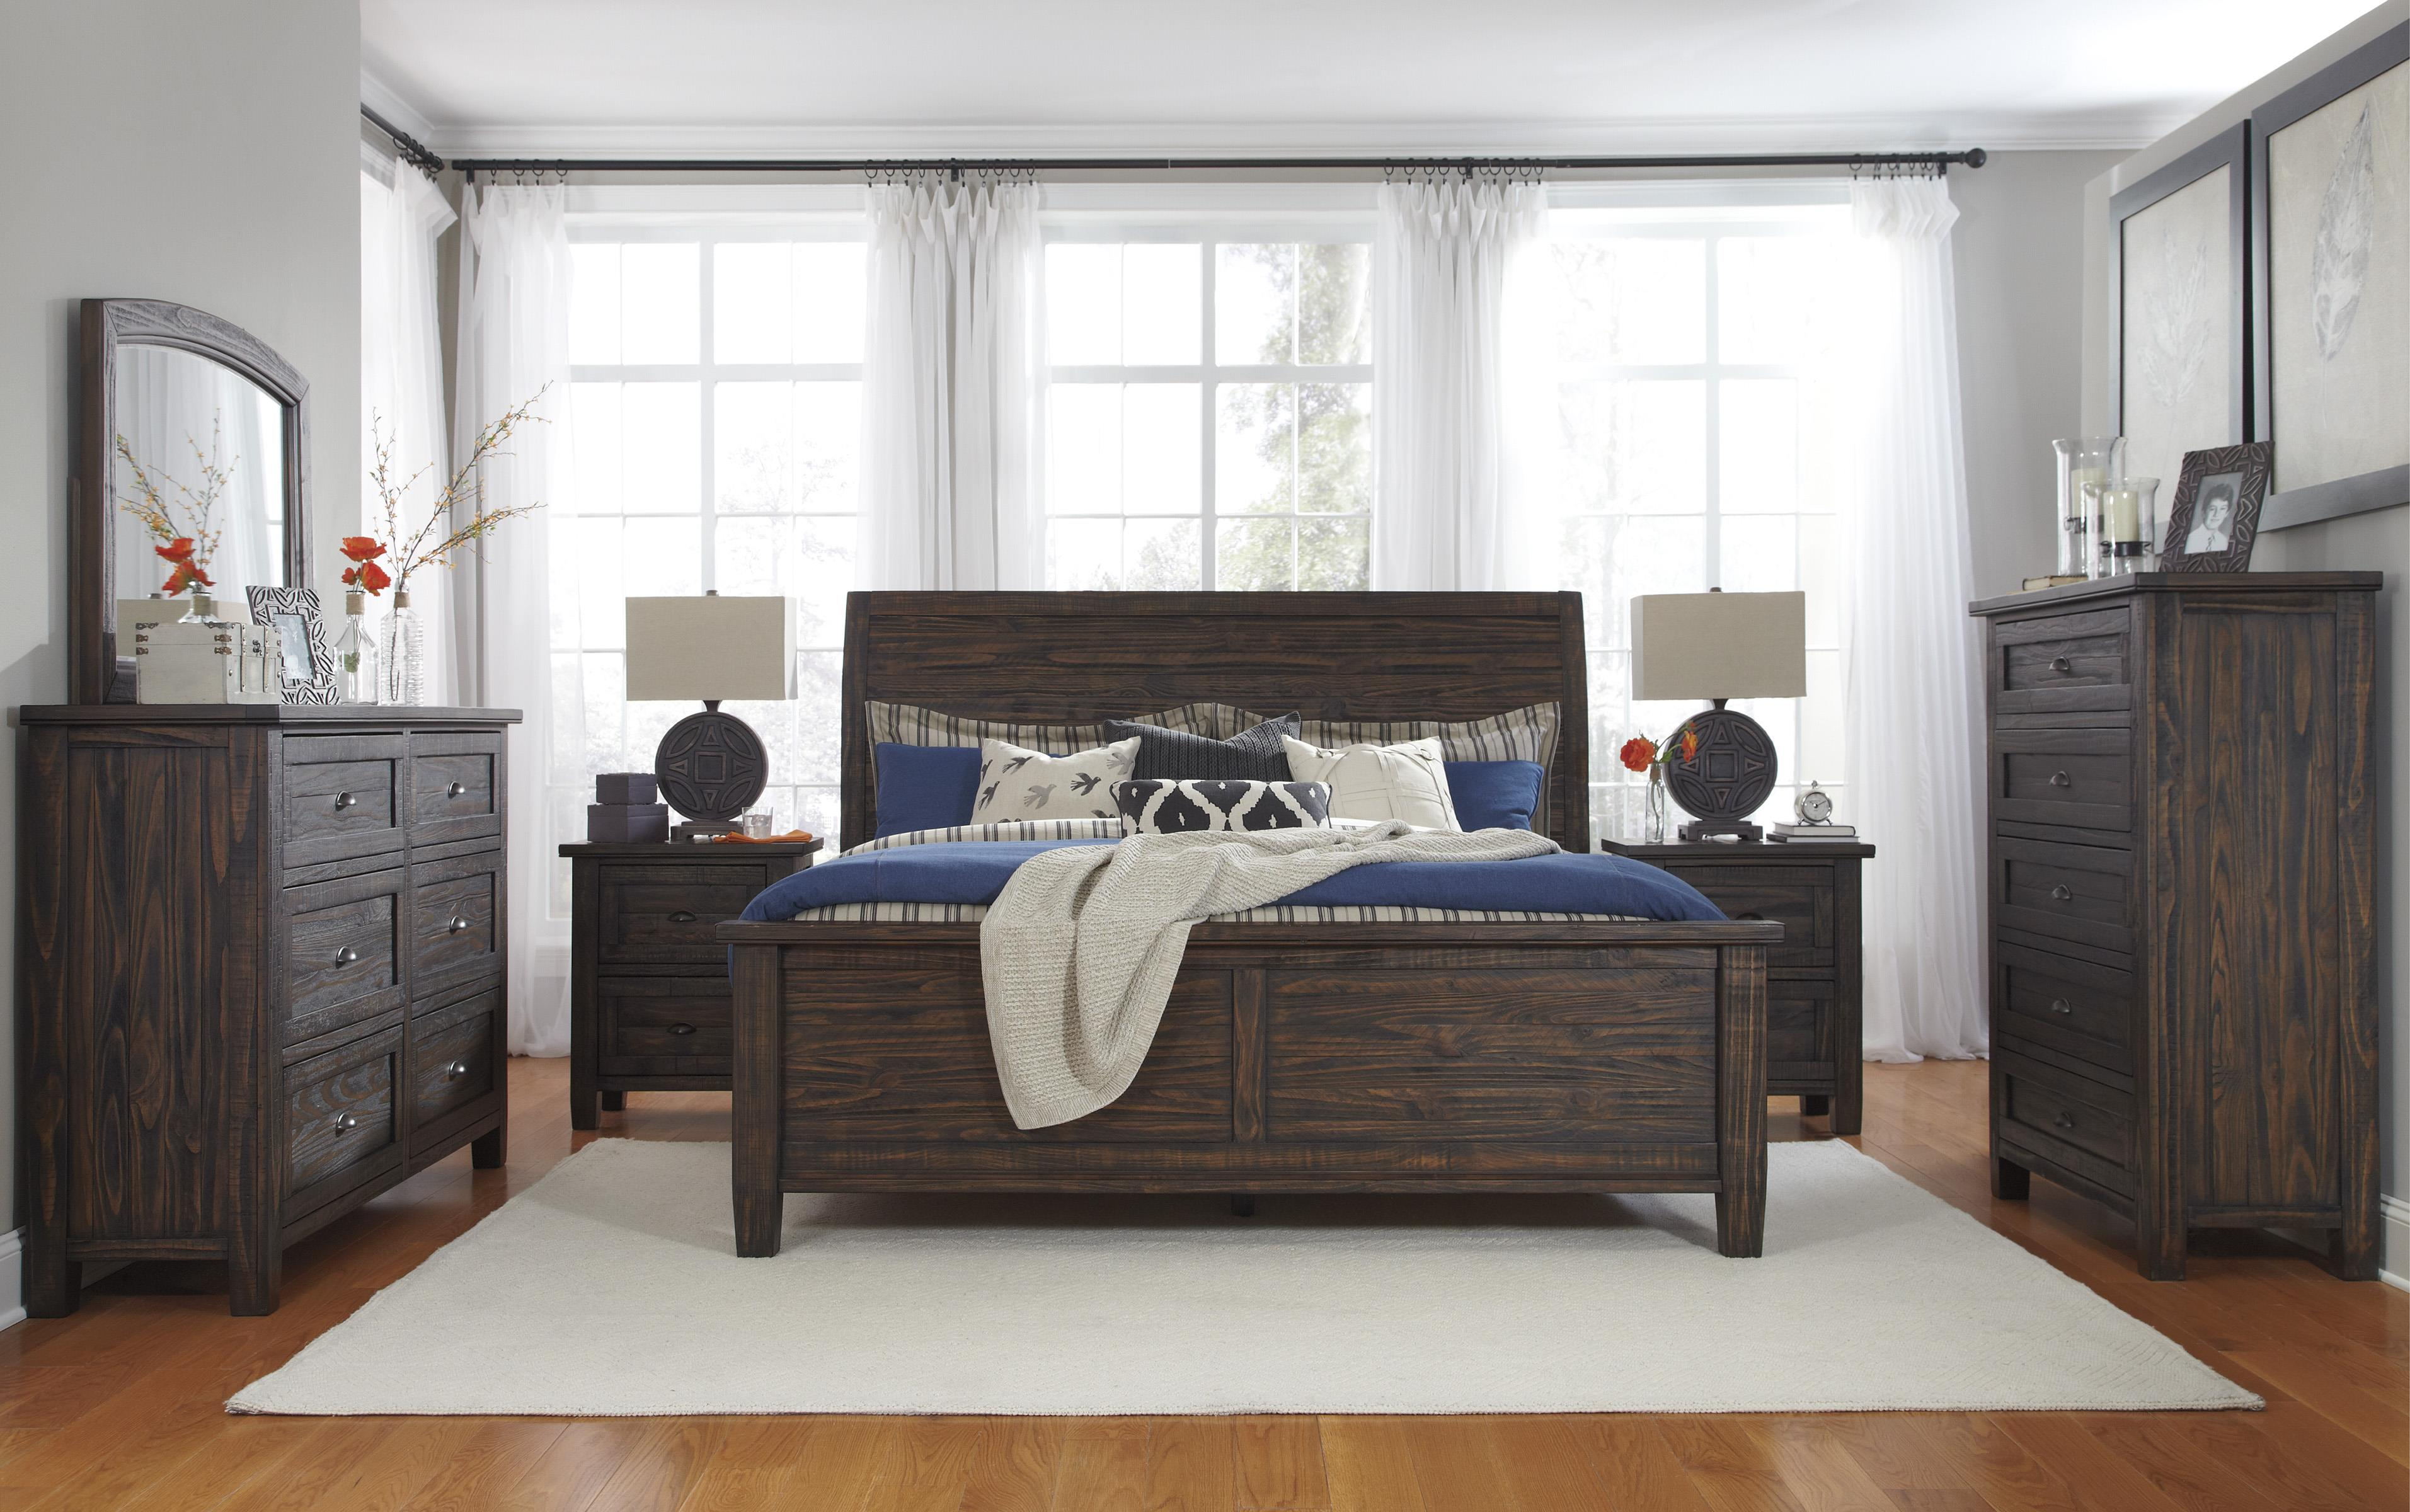 Signature Design by Ashley Trudell King Bedroom Group - Item Number: B658 K Bedroom Group 1